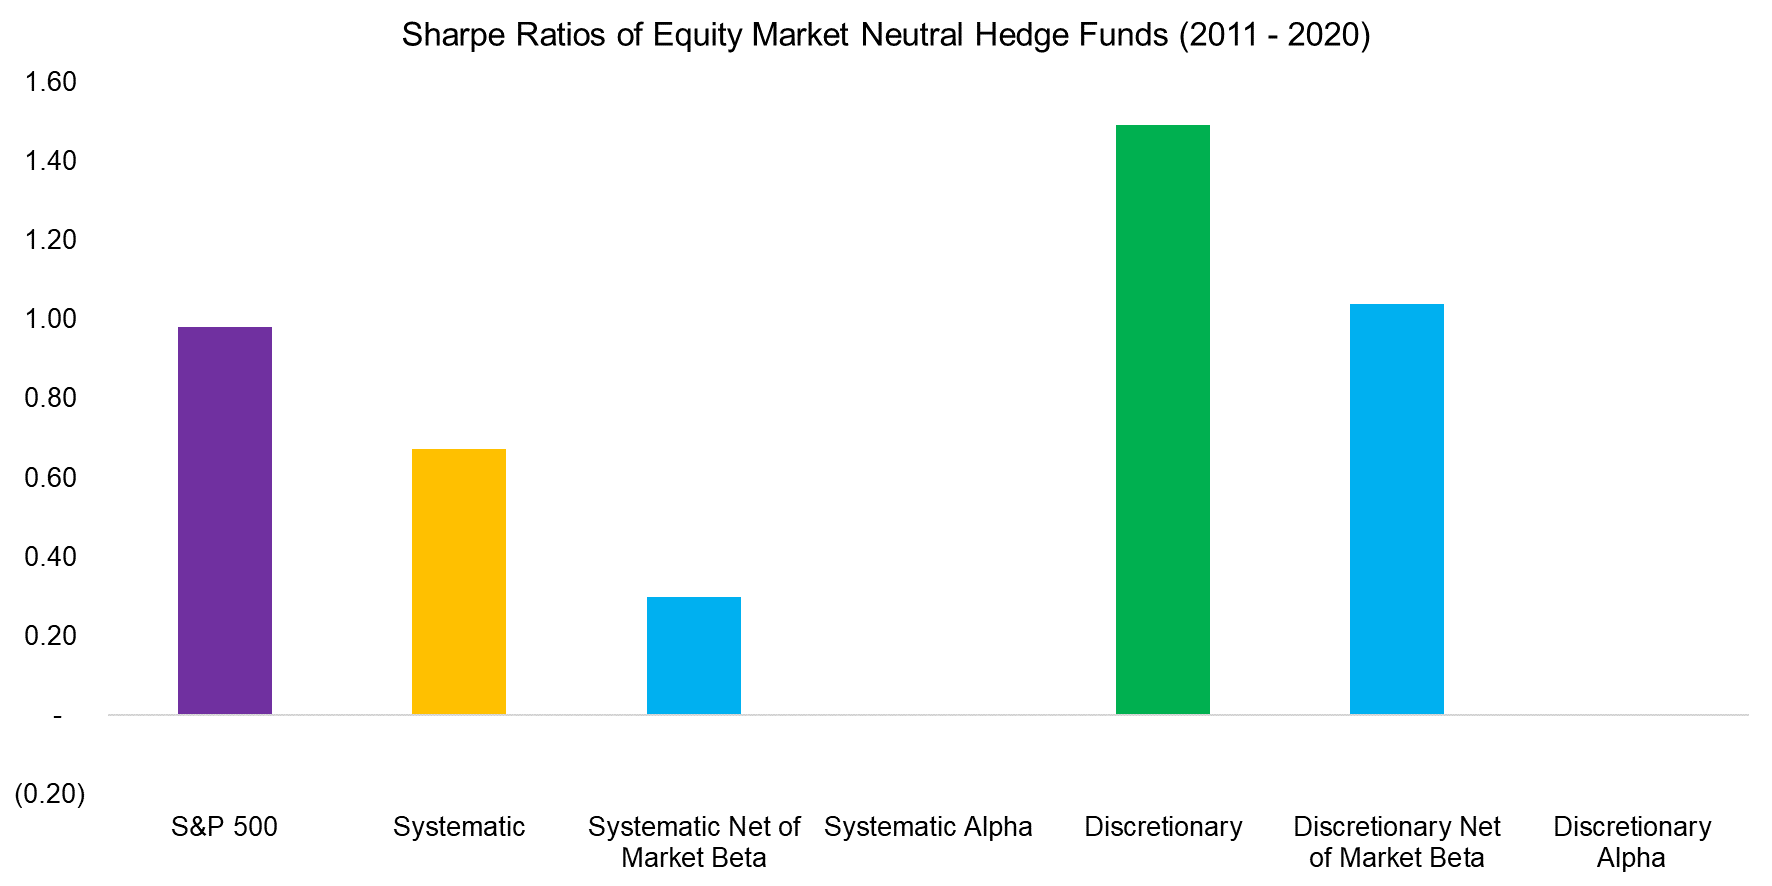 Sharpe Ratios of Equity Market Neutral Hedge Funds (2011 - 2020)